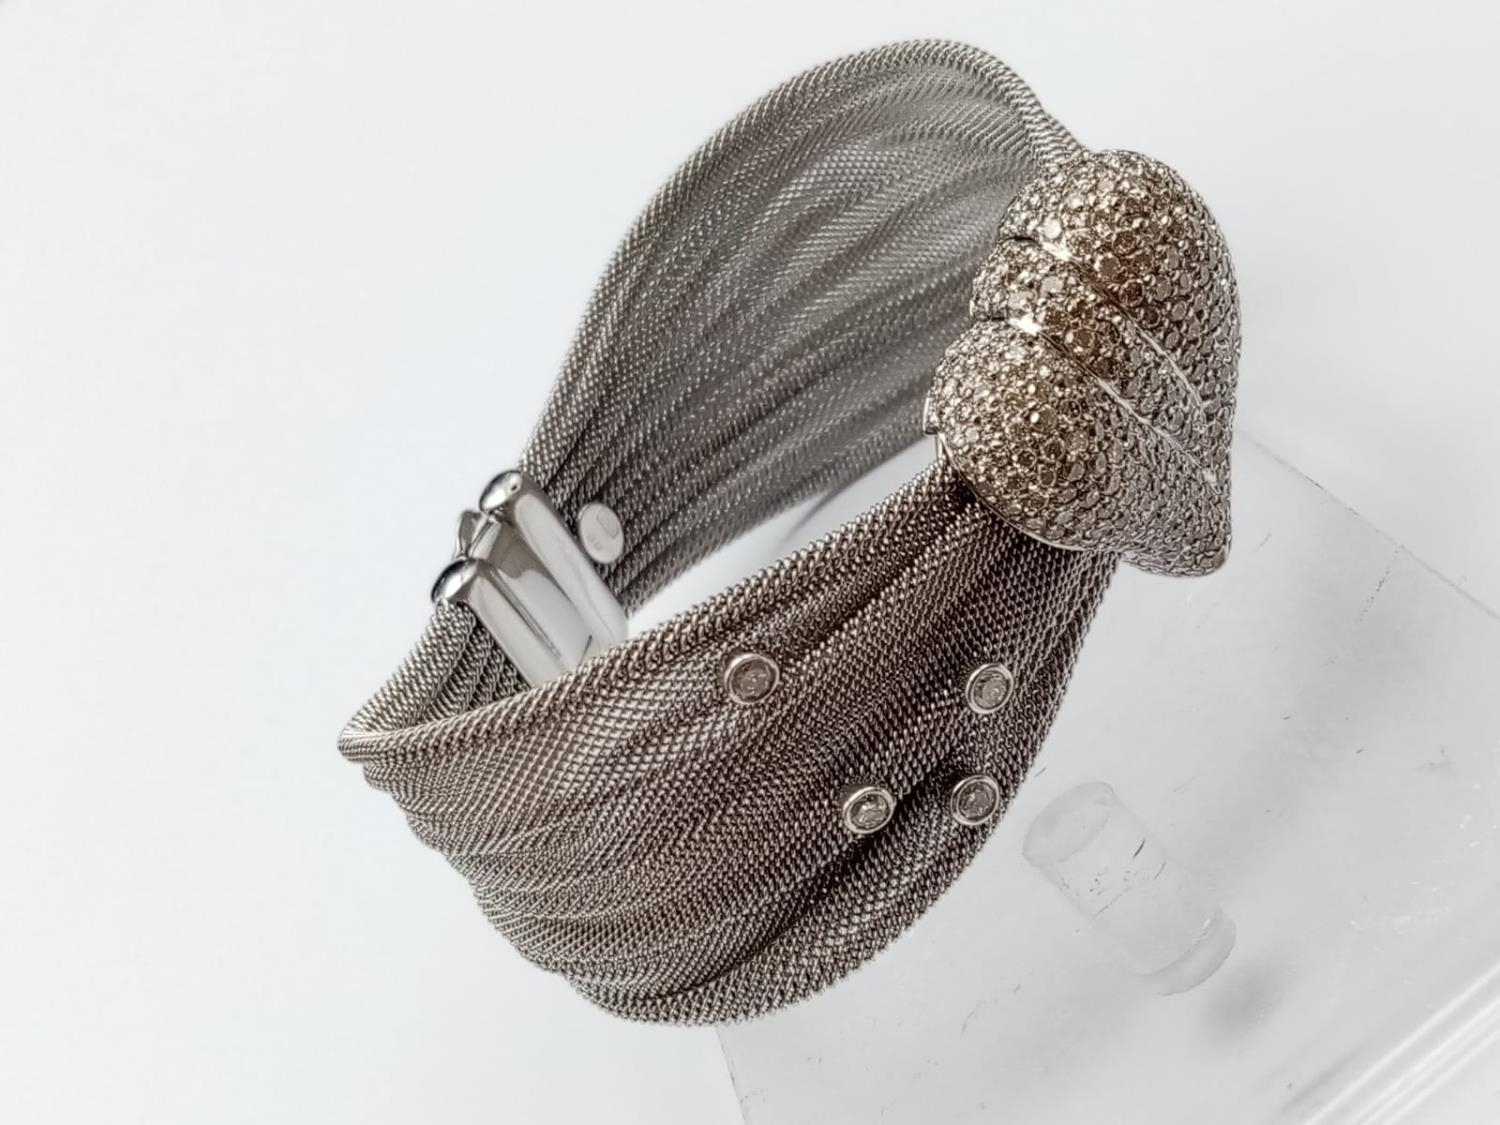 an 18k white gold bracelet with 10 diamonds and a diamond encrusted heart. 53.4gms 19cms - Image 6 of 10